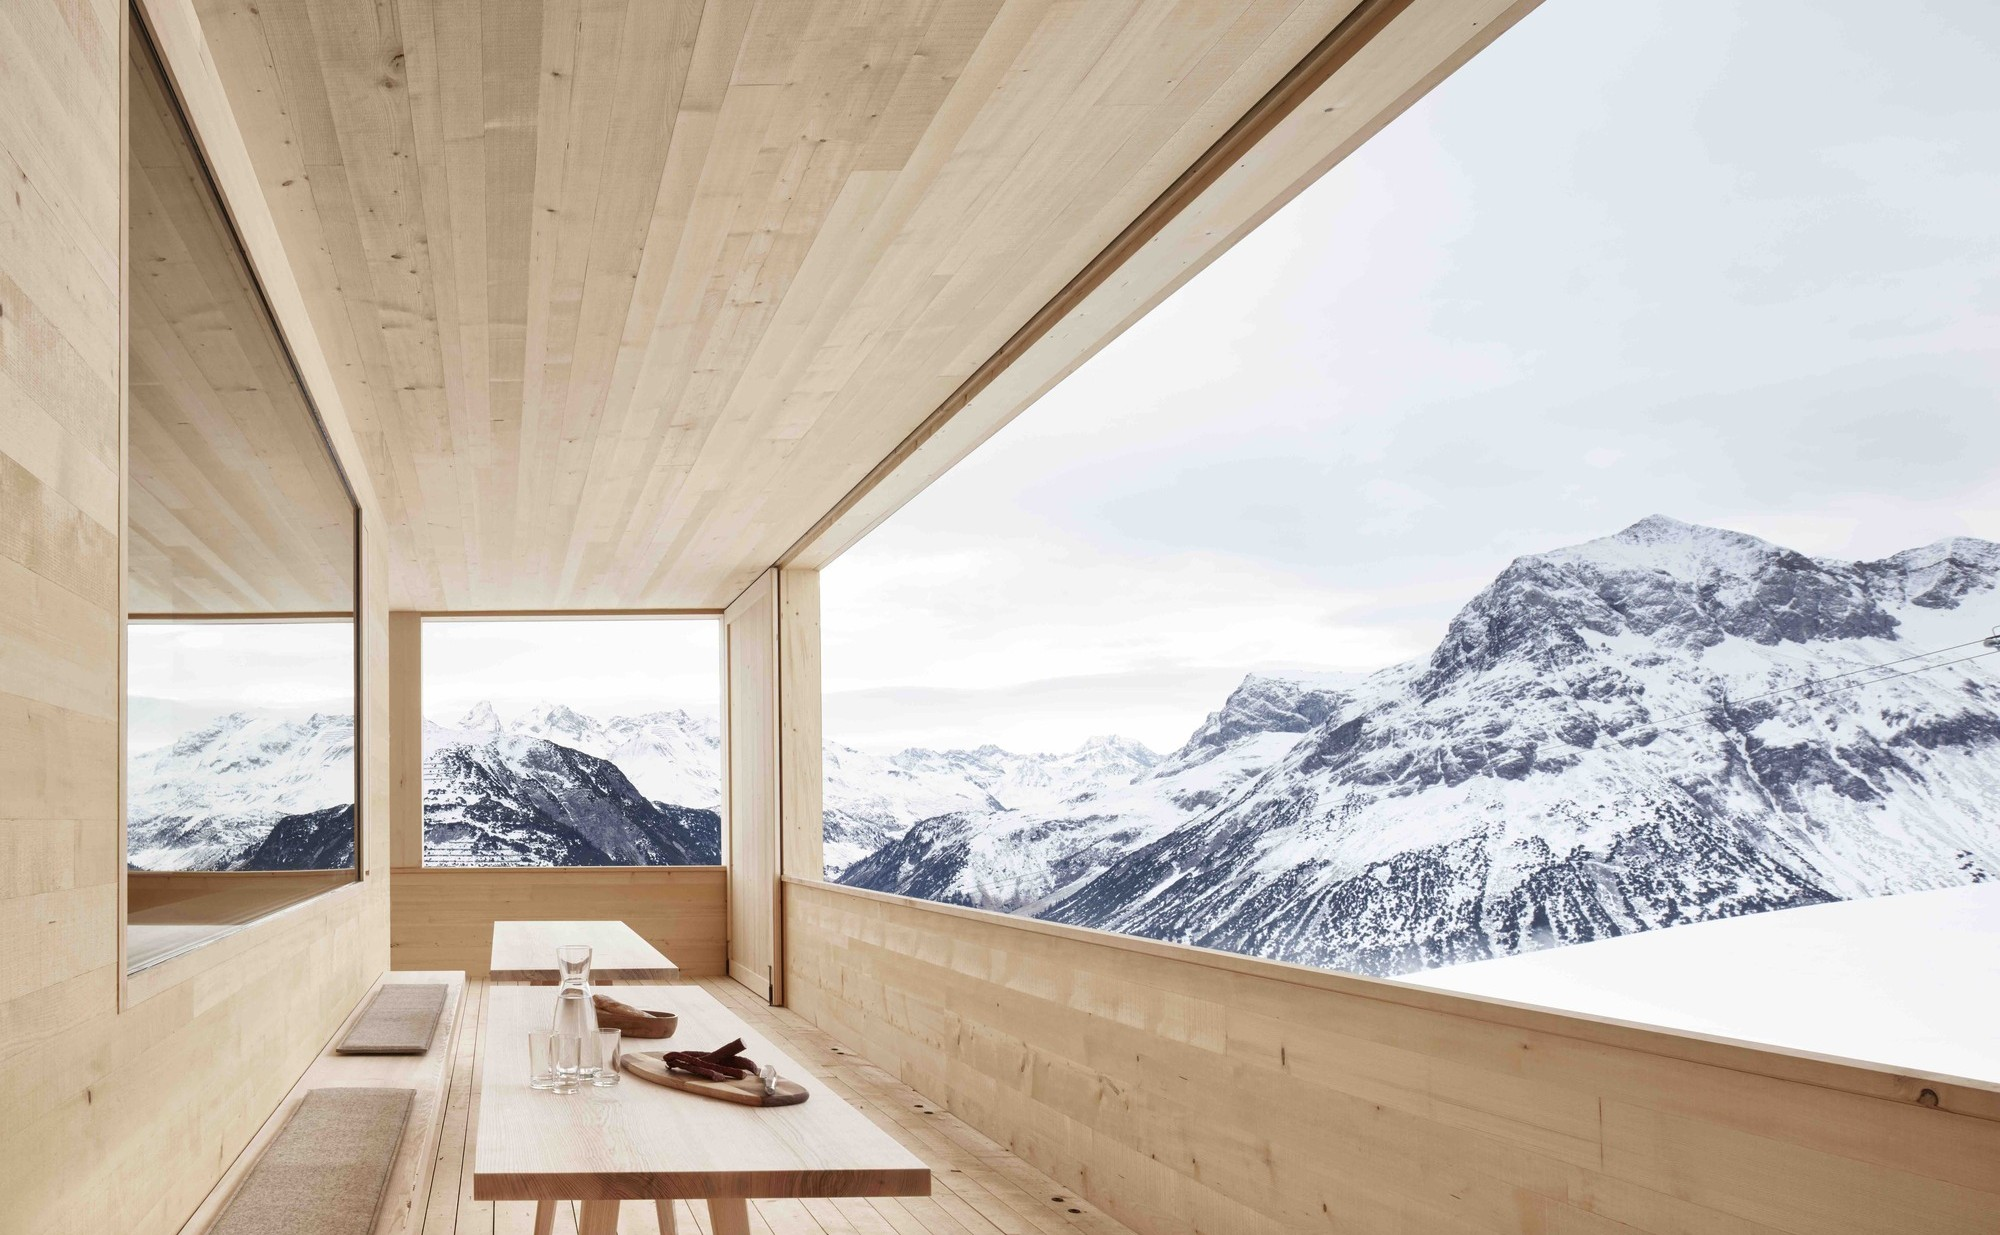 Ski Lodge Wolf | Bernardo Bader Architects